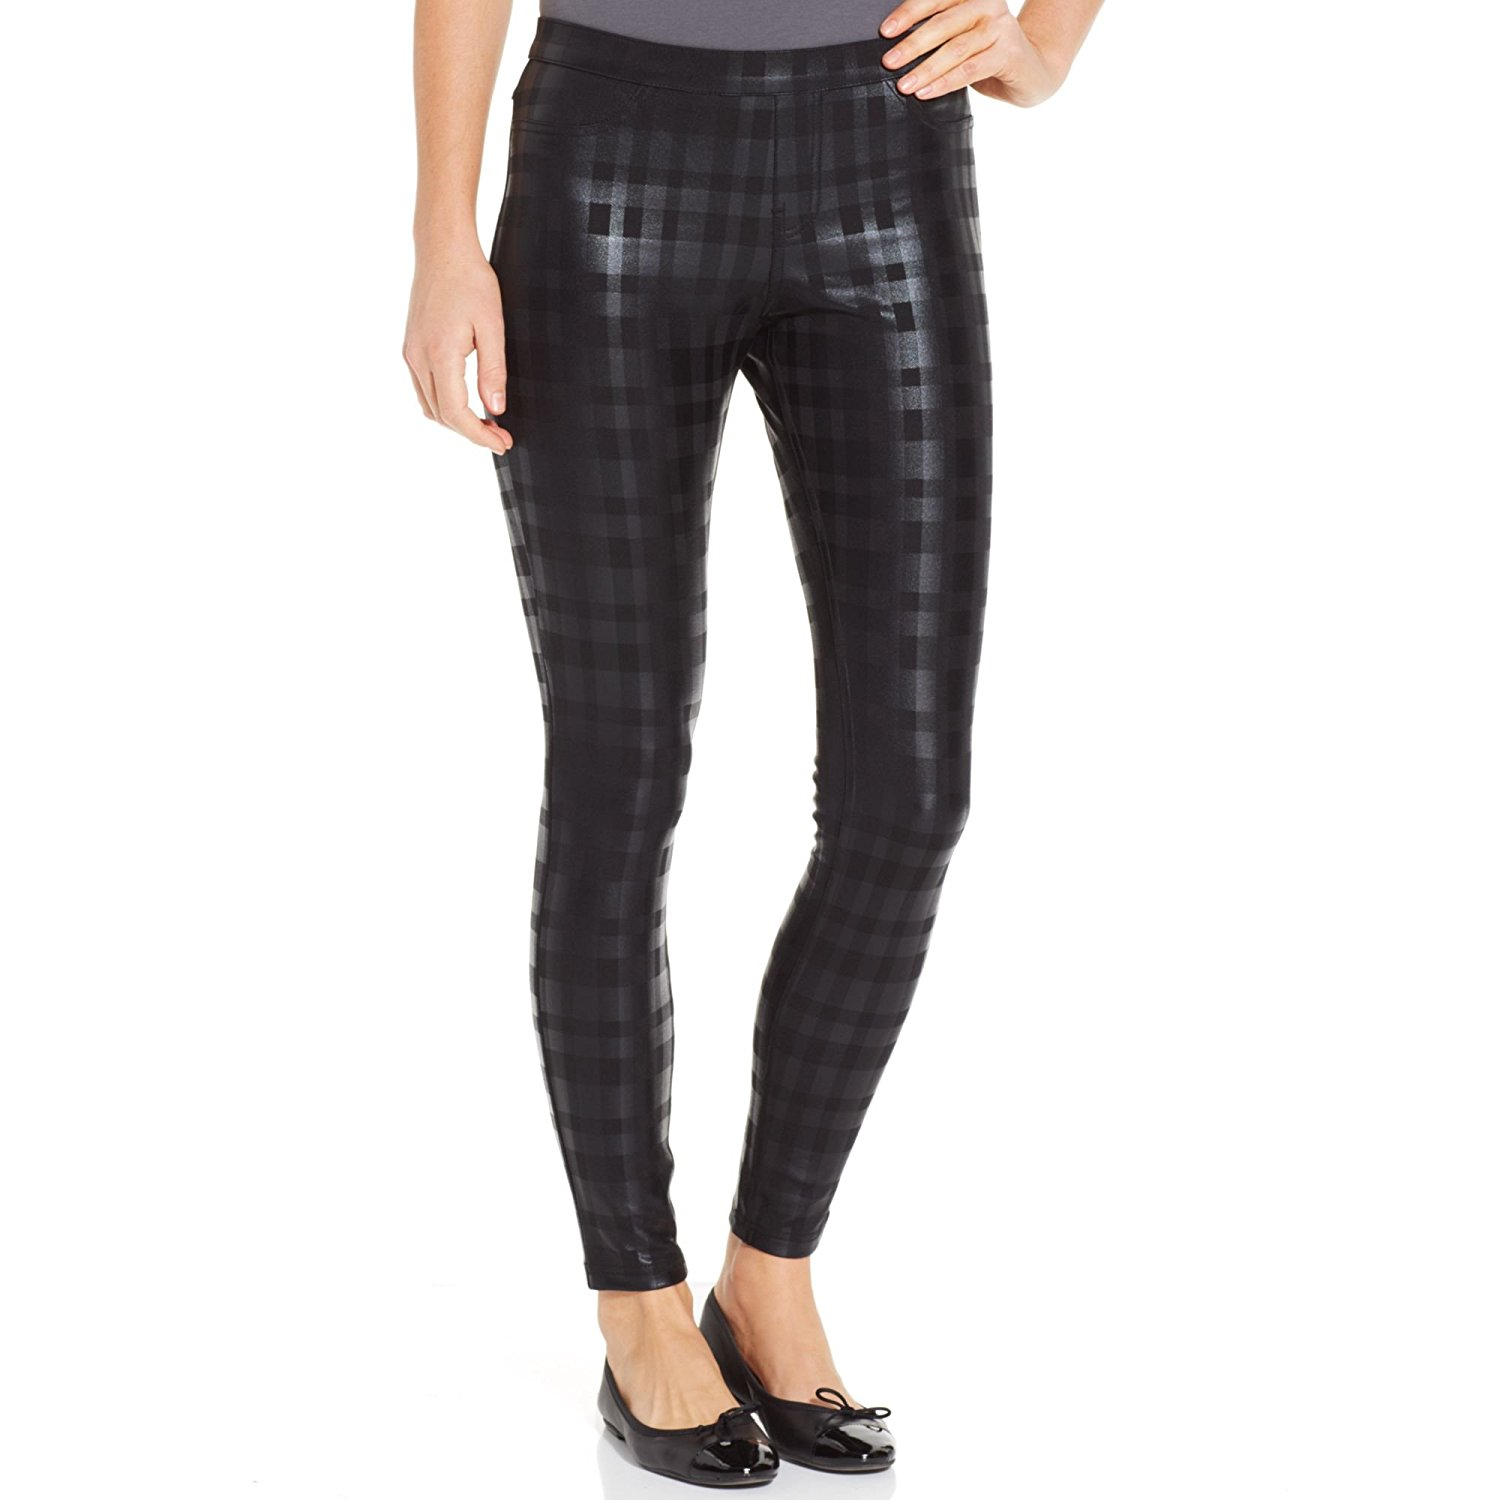 4e7b5fd5a3d Get Quotations · Hue Women s Black Plaid Print Ponte Leggings